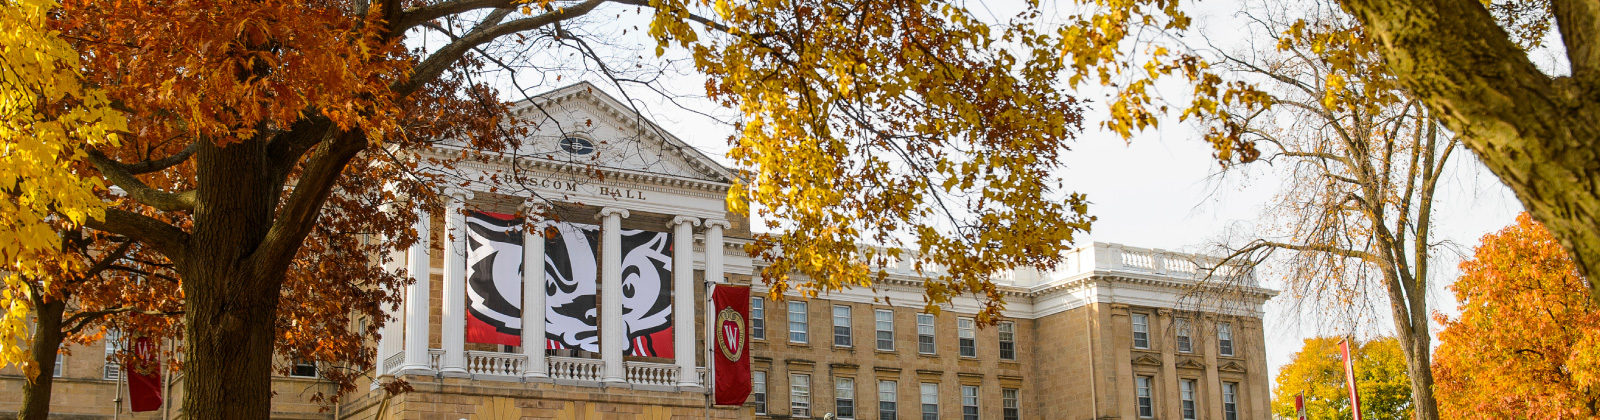 Bascom during Fall